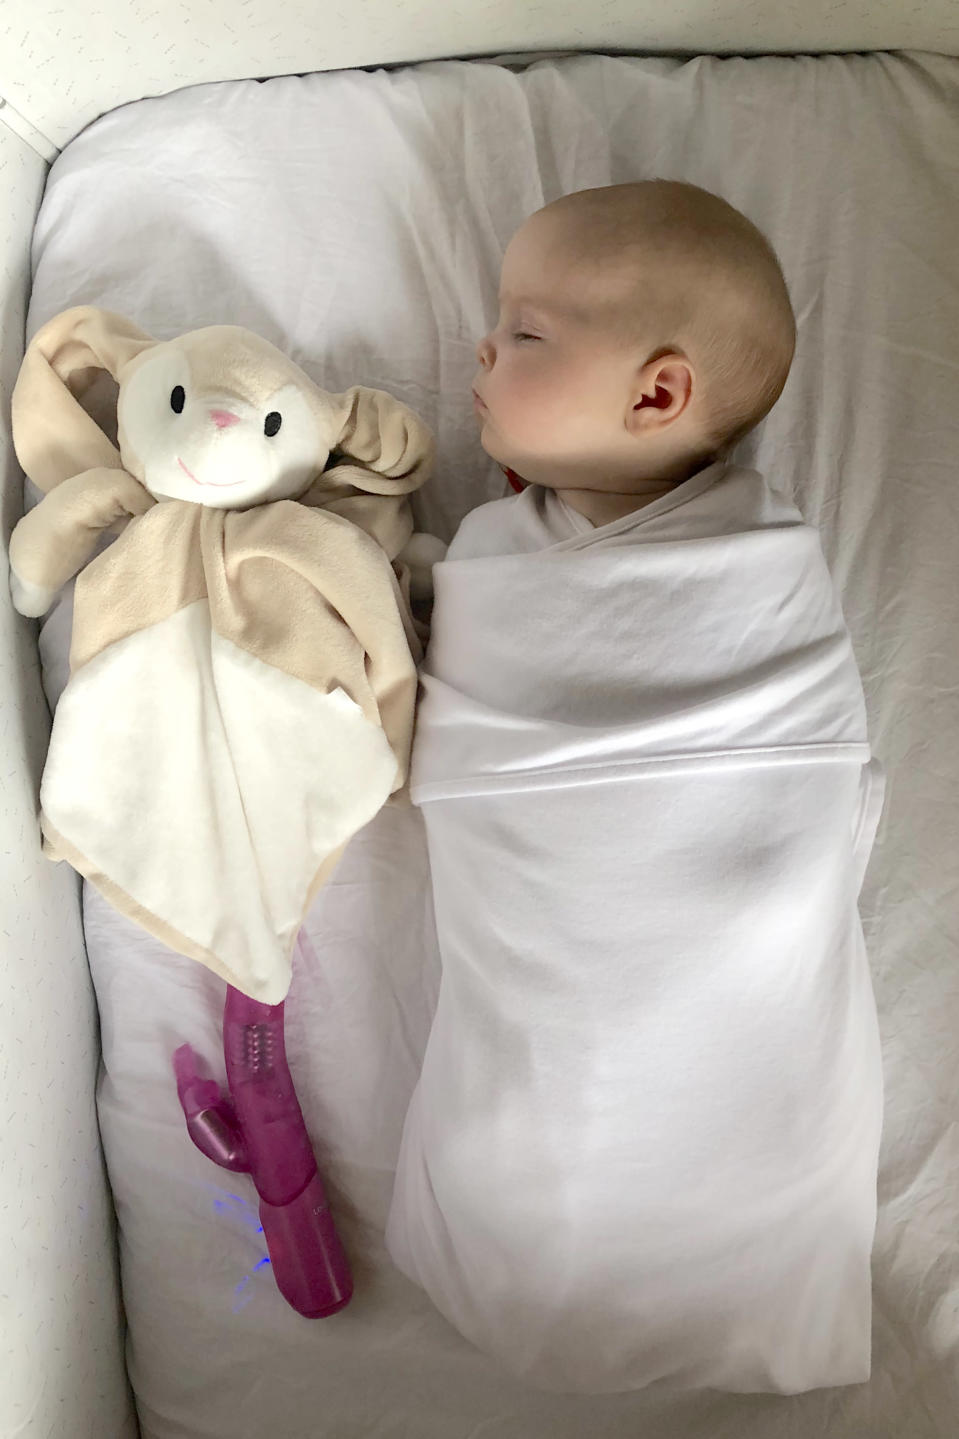 Baby Lucie fast asleep with the vibrator [Photo: Caters News Agency]